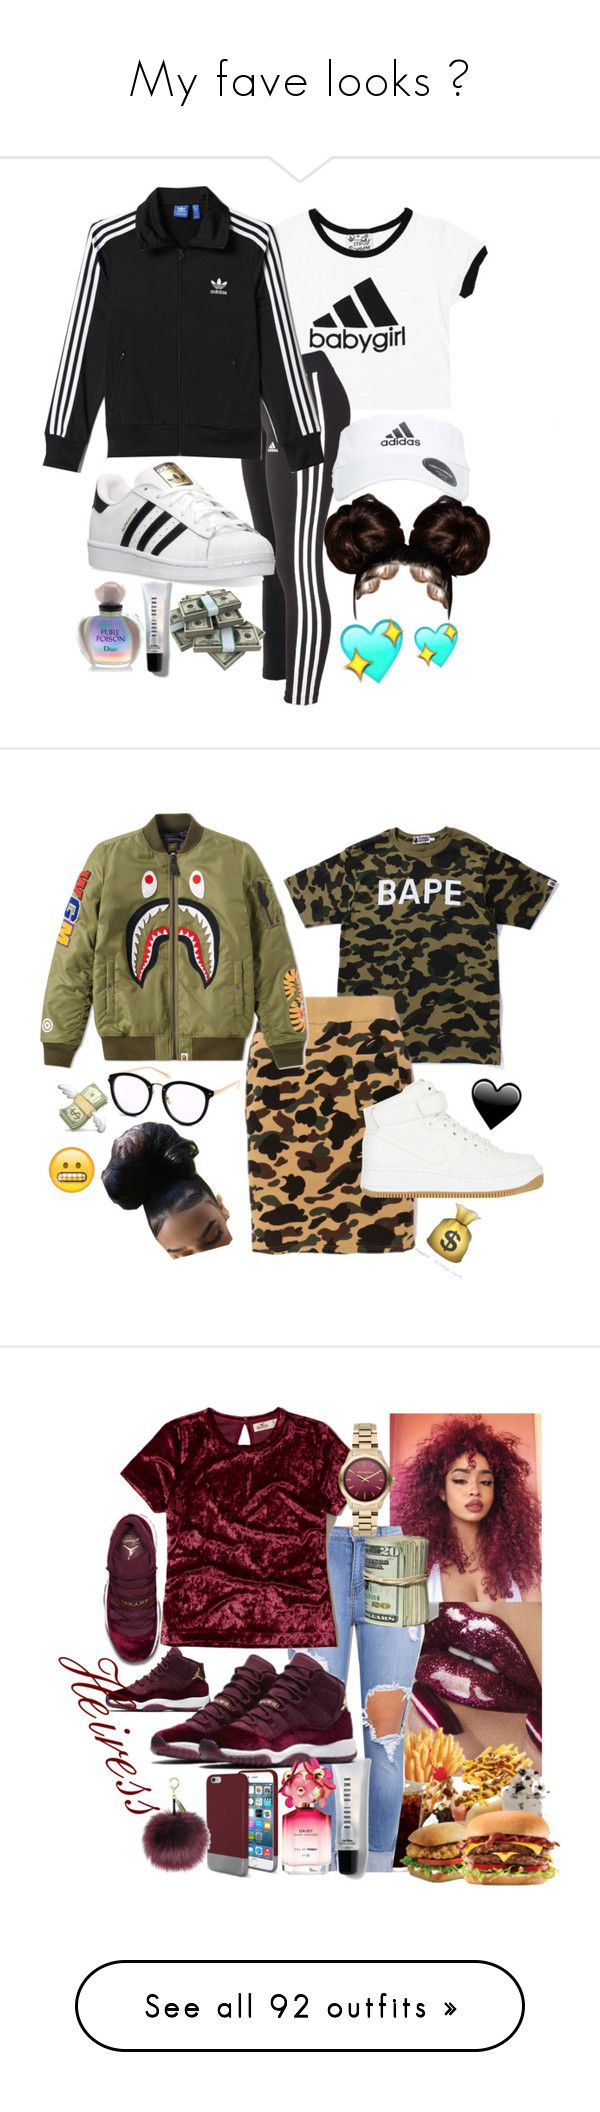 """My fave looks ✨"" by bxbysnoop ❤ liked on Polyvore featuring adidas, Christian Dior, Bobbi Brown Cosmetics, A BATHING APE, NIKE, Original Penguin, Hollister Co., Karl Lagerfeld, Marc Jacobs and Victoria's Secret"